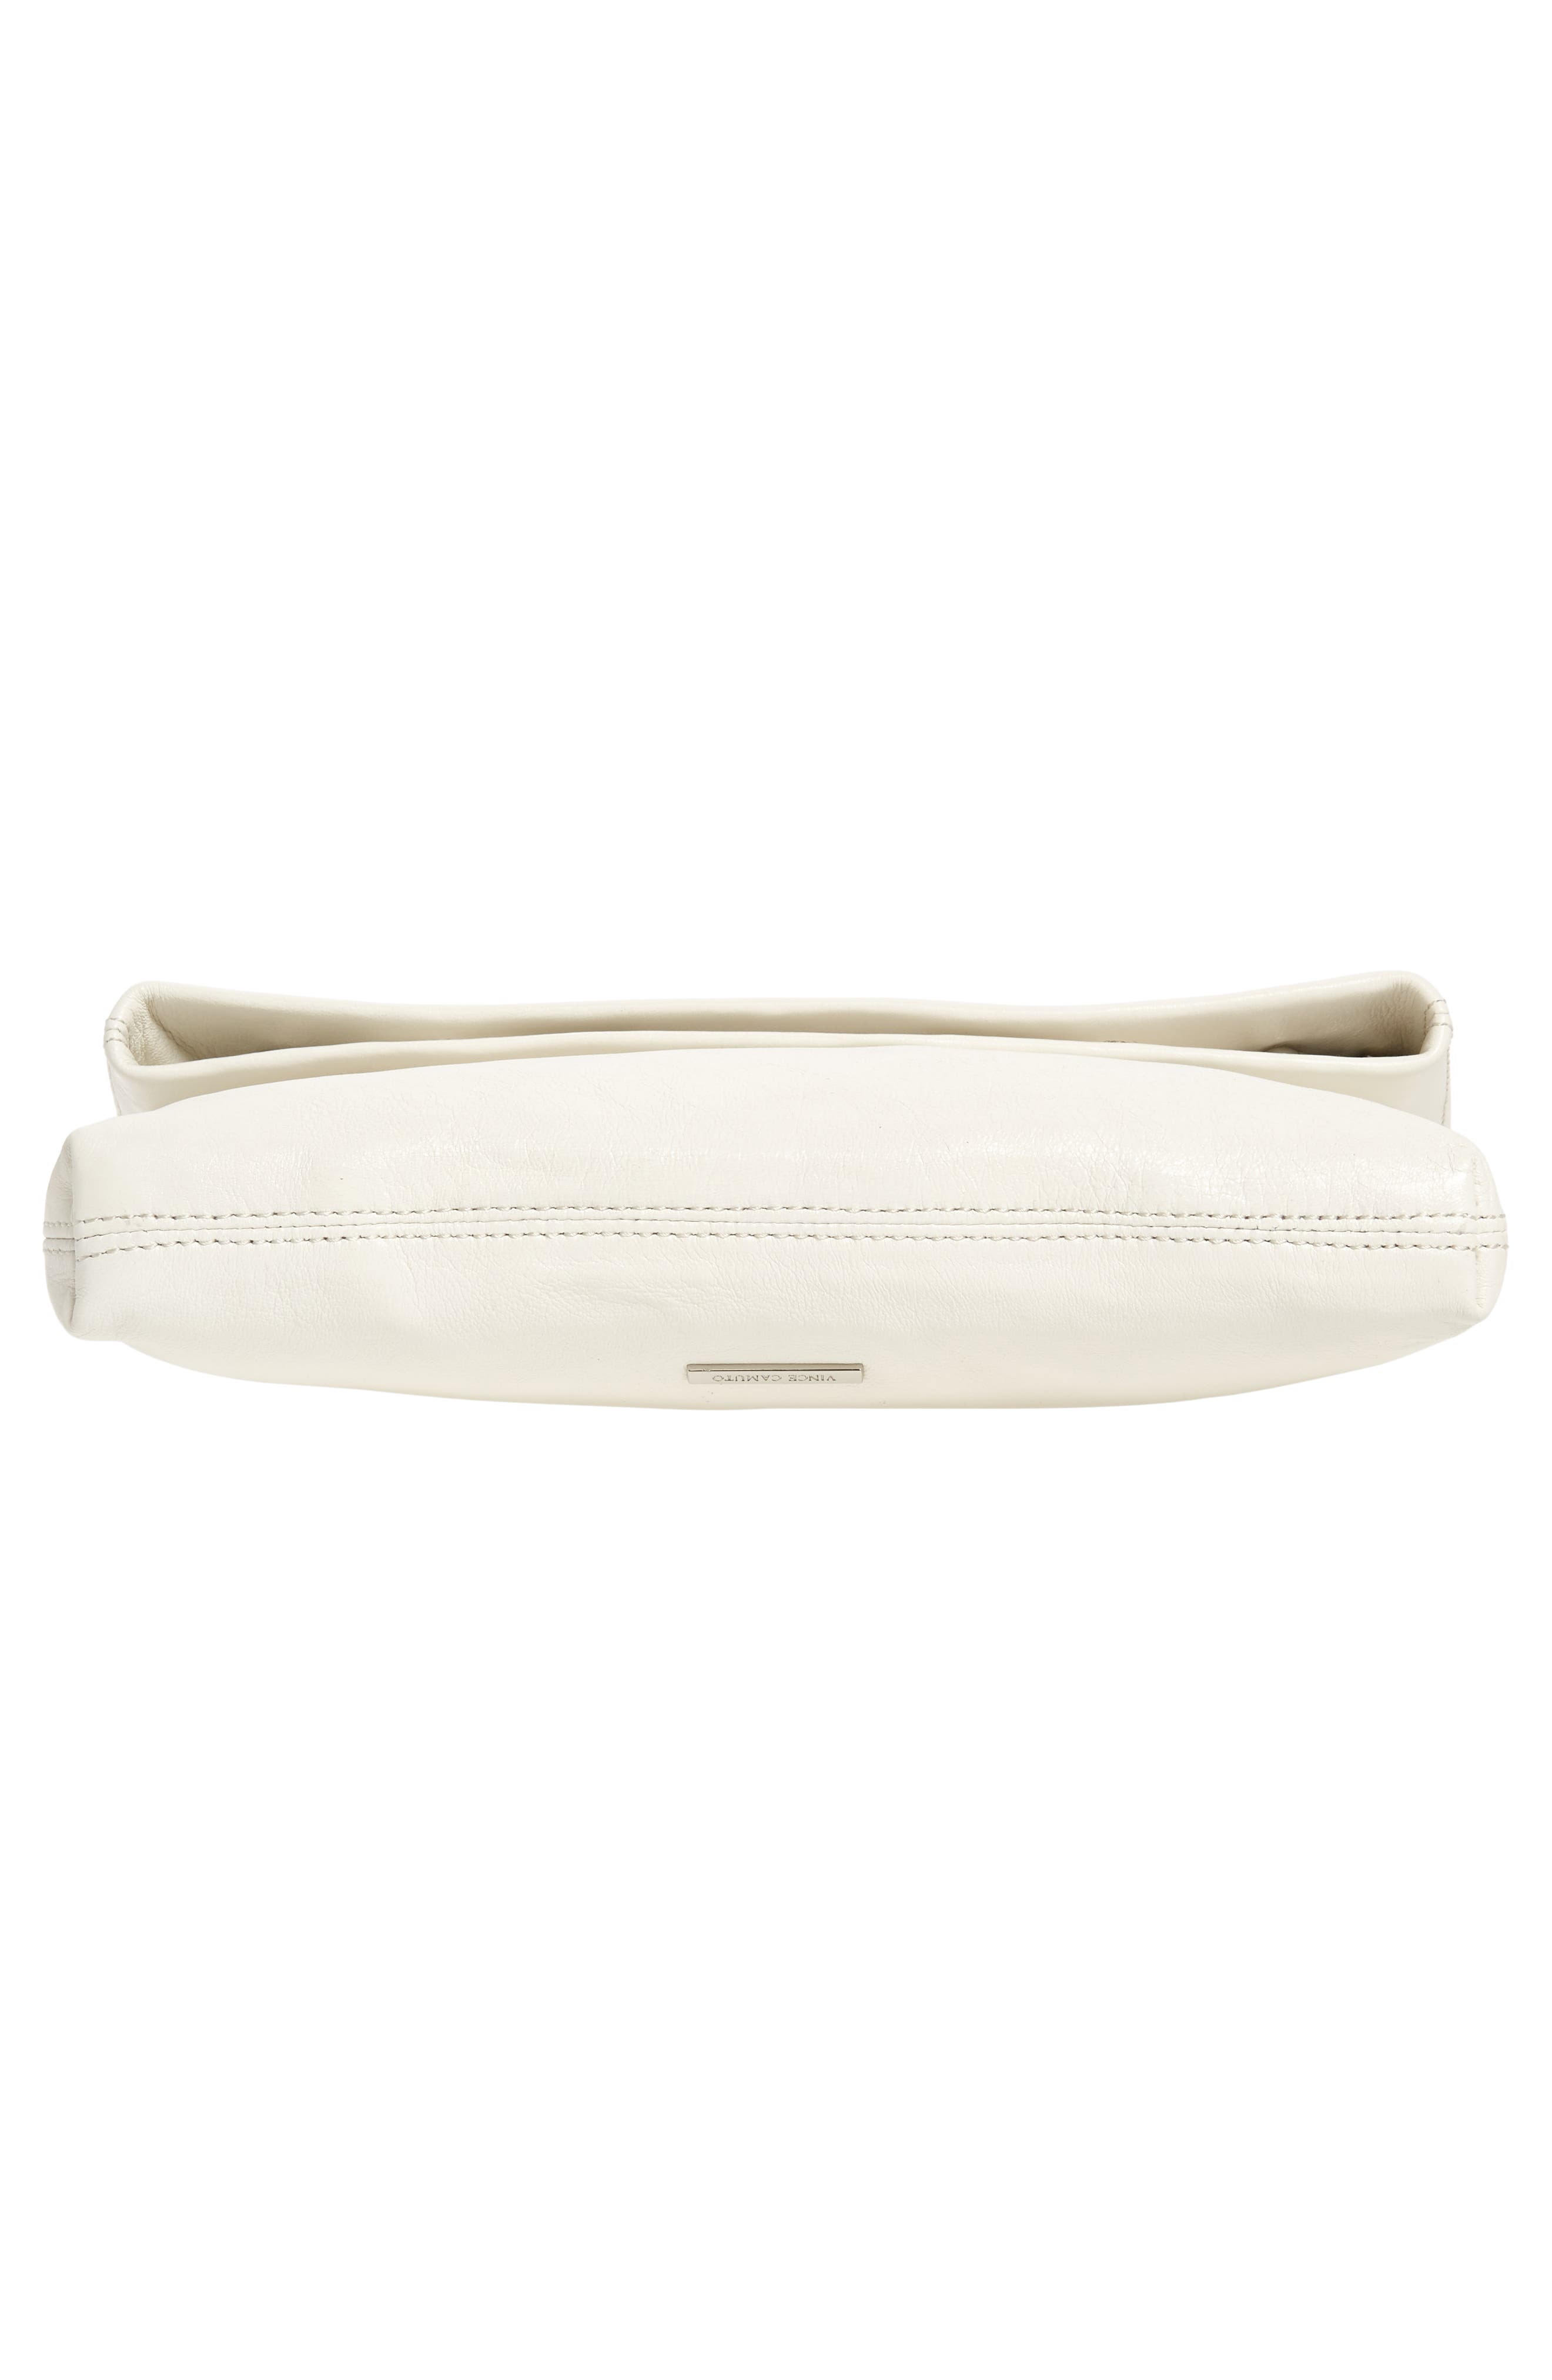 Large Marti Leather Convertible Clutch,                             Alternate thumbnail 7, color,                             SNOW WHITE